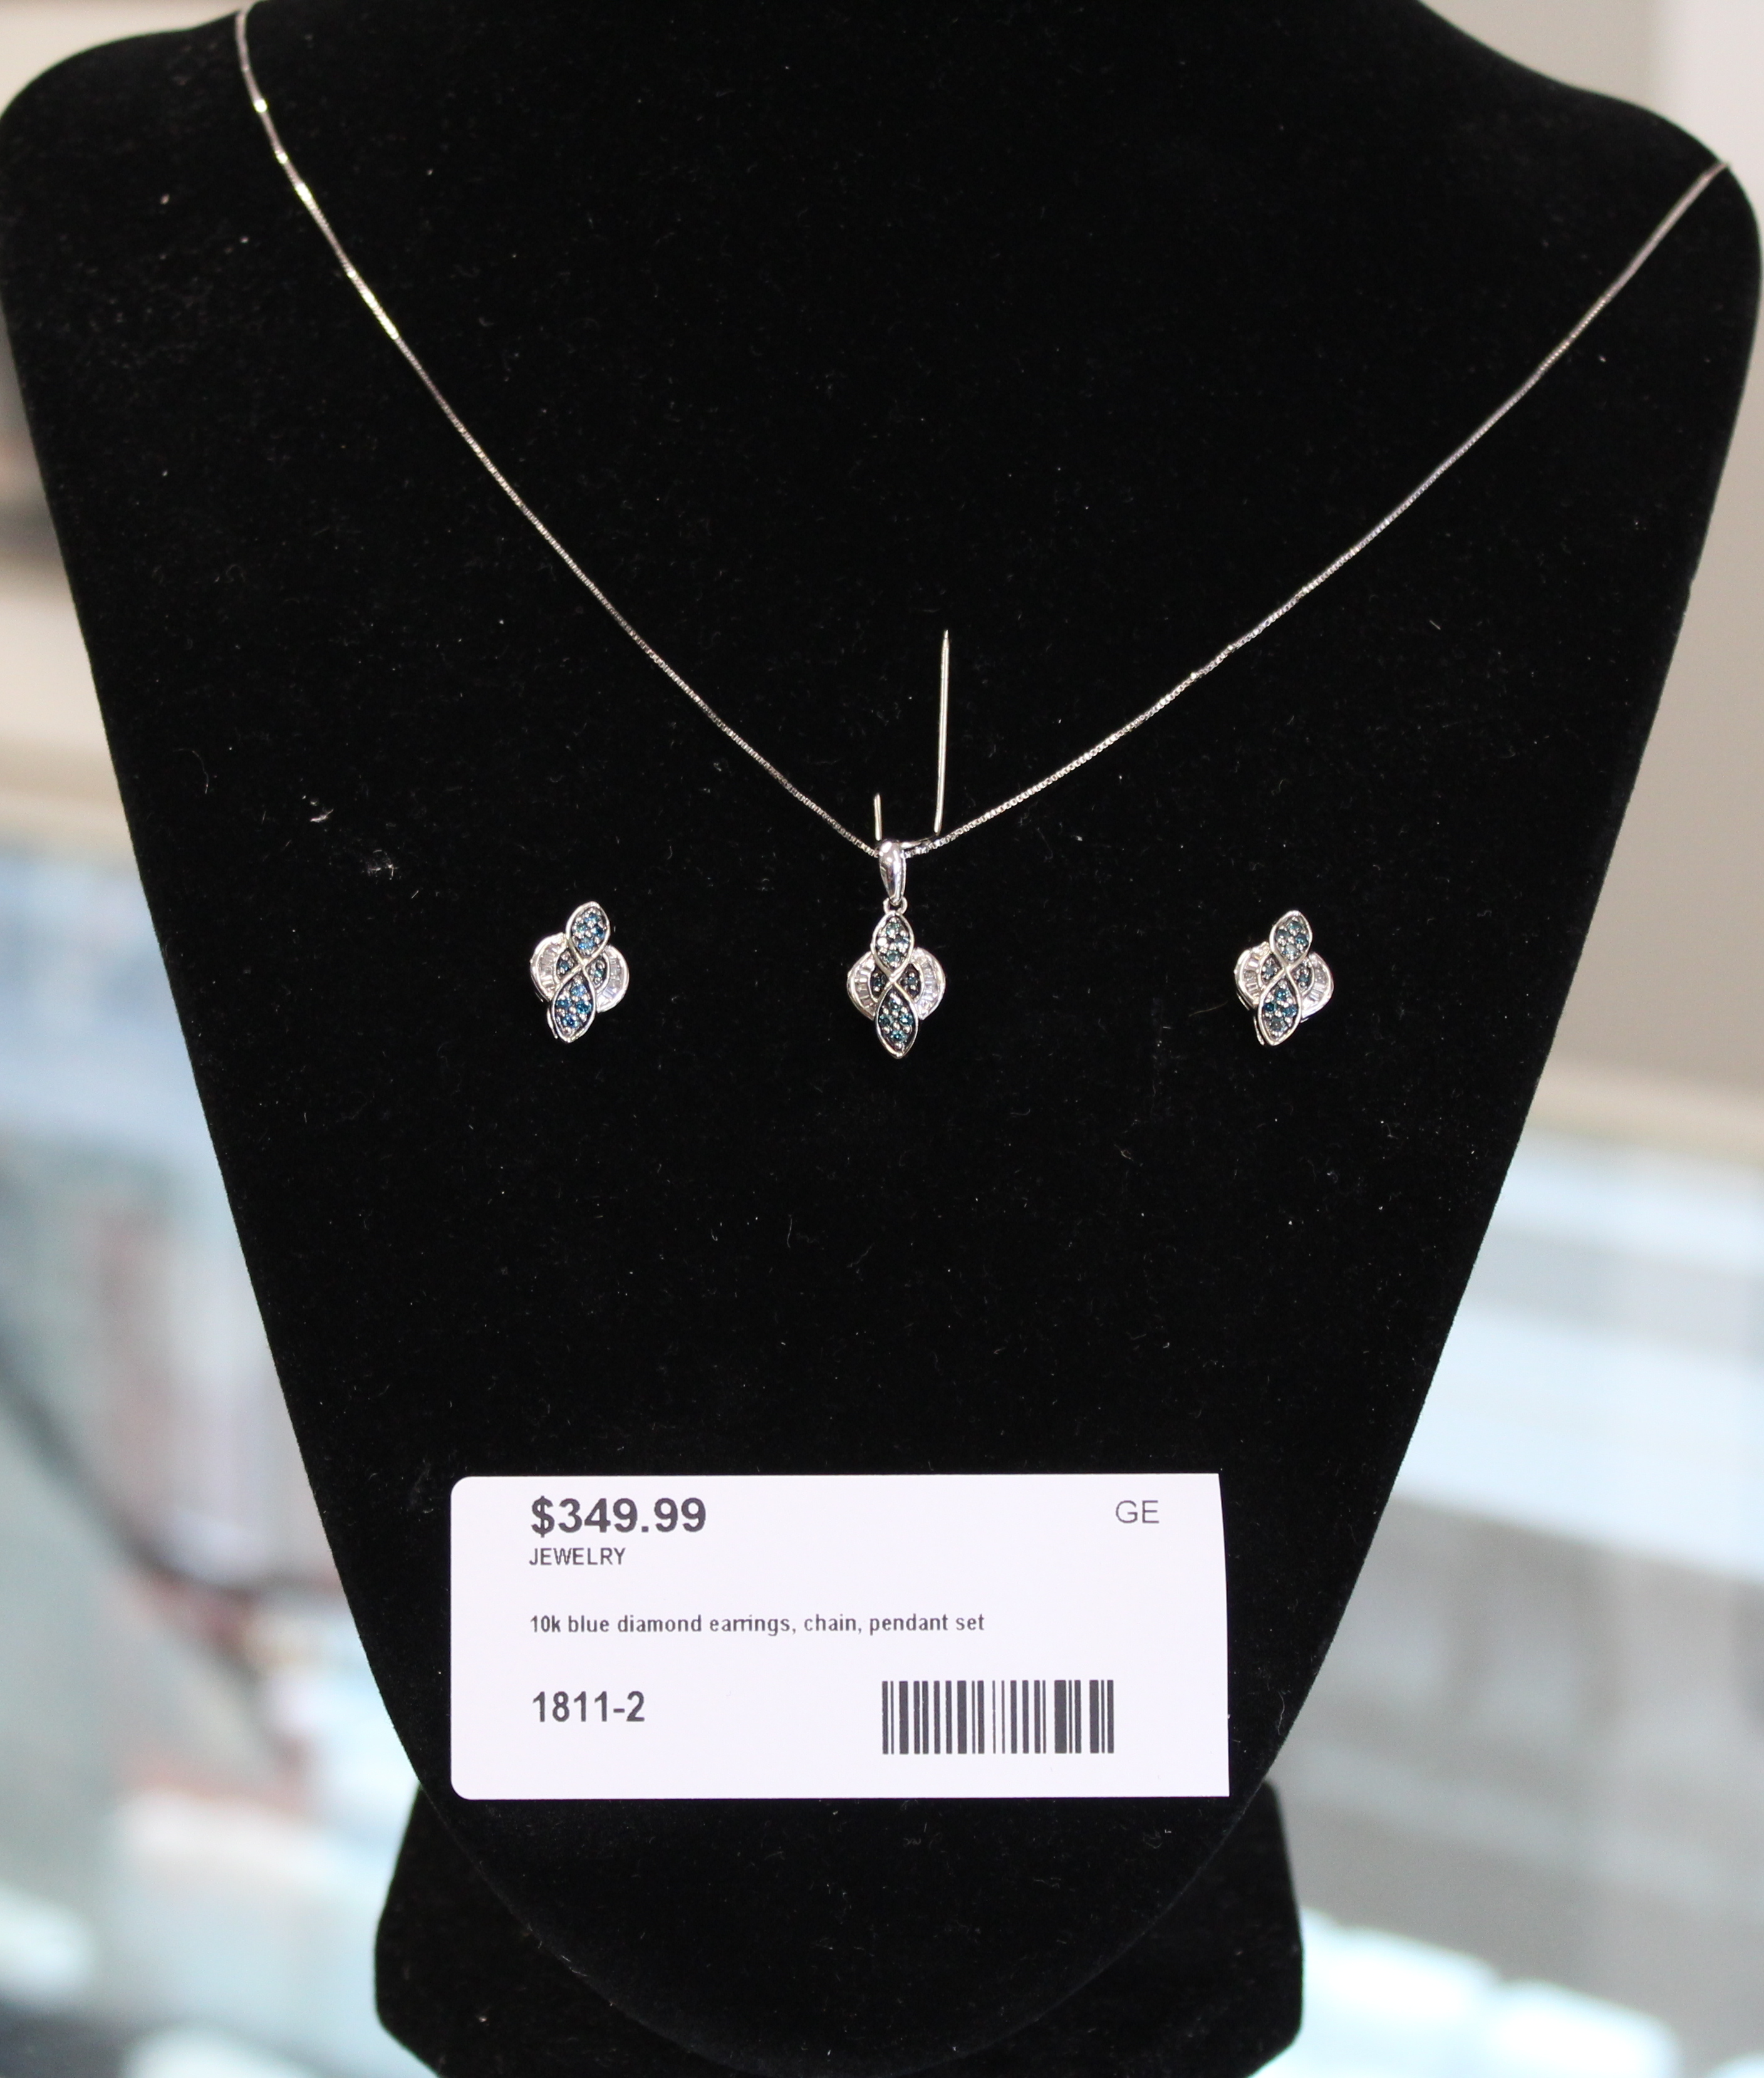 10k White Gold Diamond and Blue Diamond chain, Pendant and Earring set